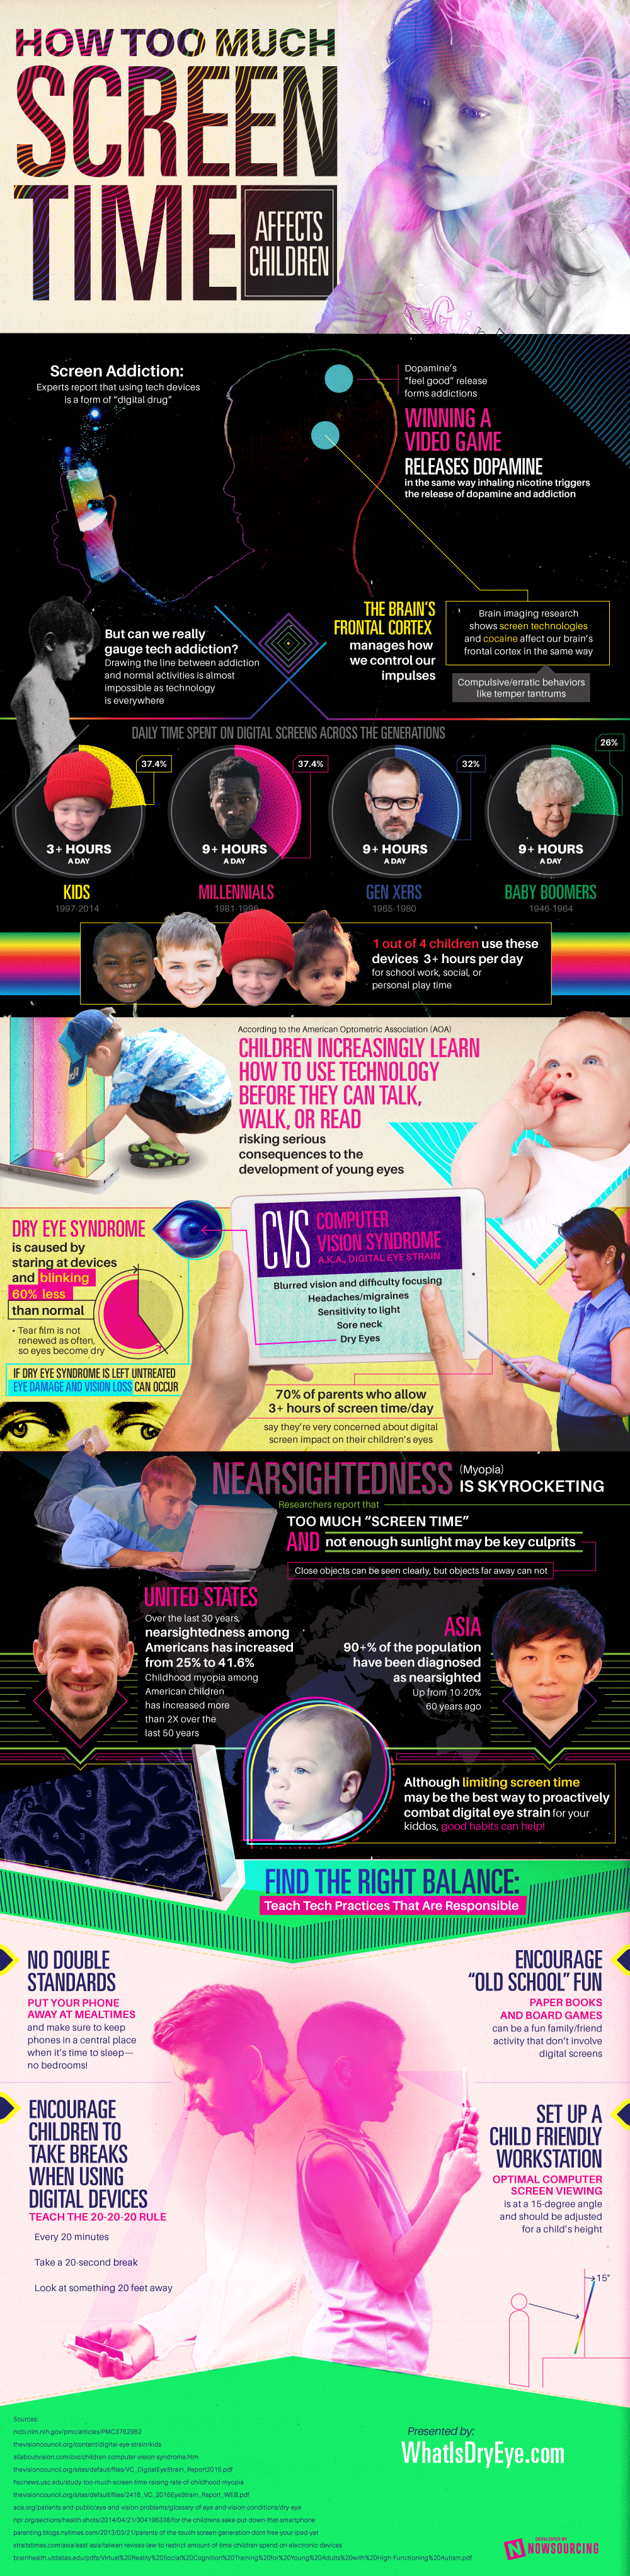 How Too Much Screen Time Affects Kids [Infographic]